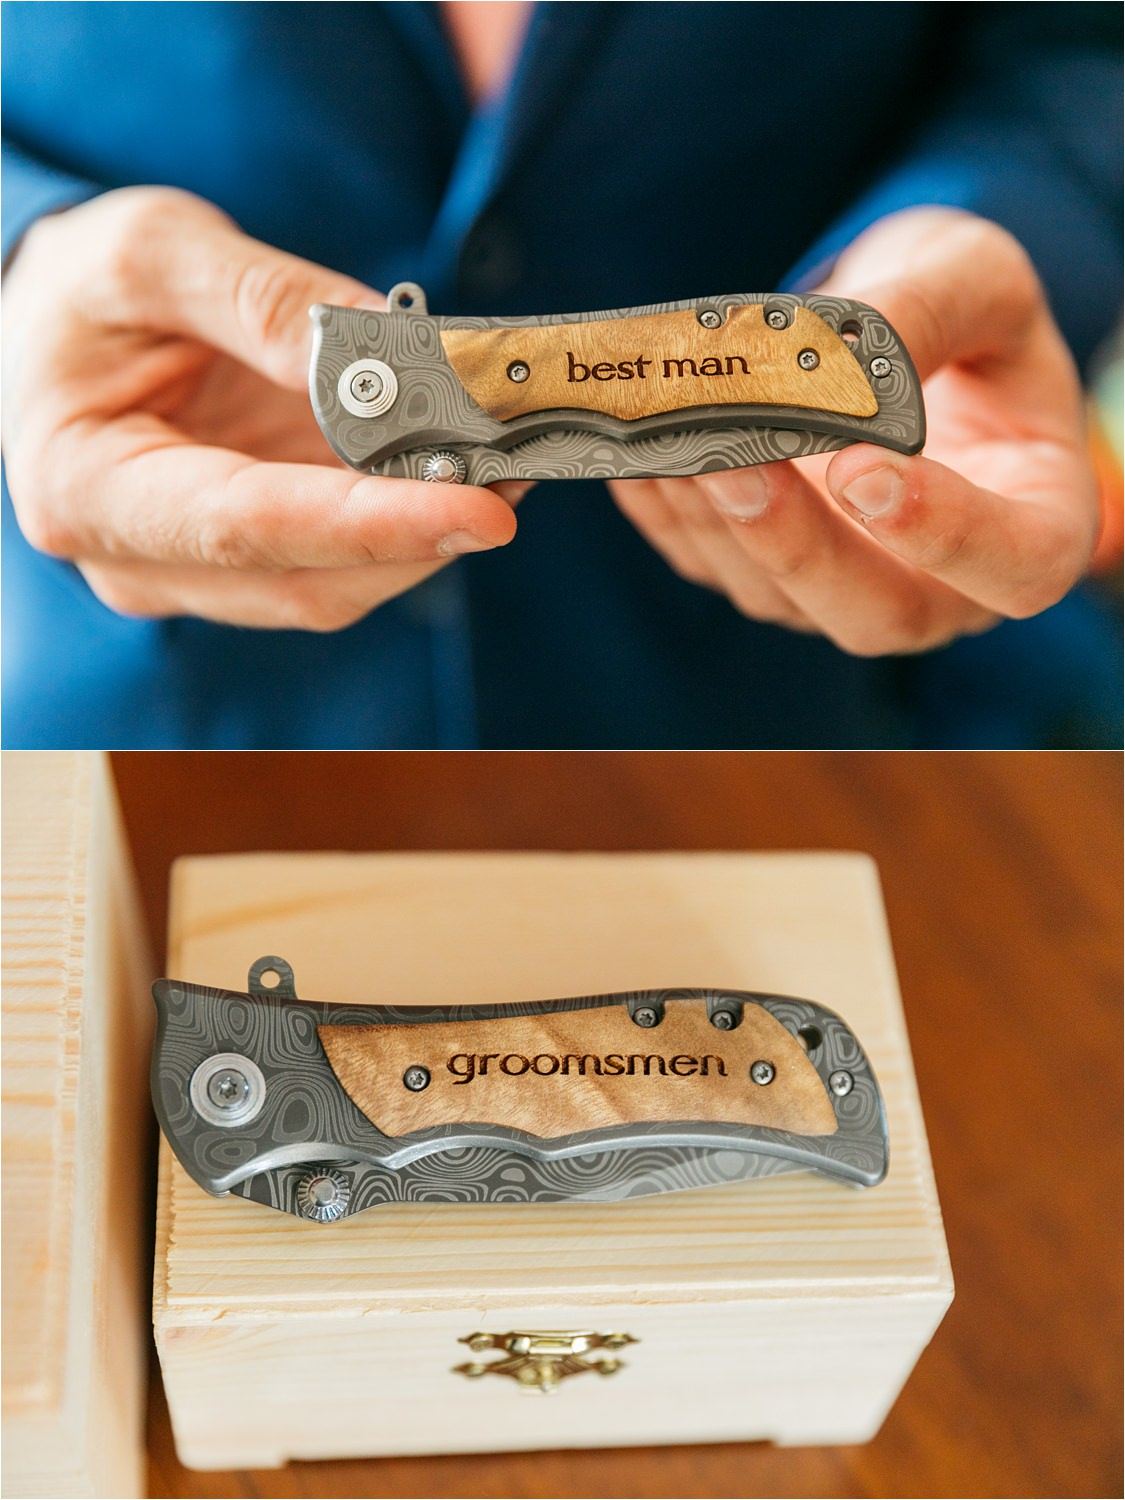 Best Man and Groomsmen Gifts - https://brittneyhannonphotography.com